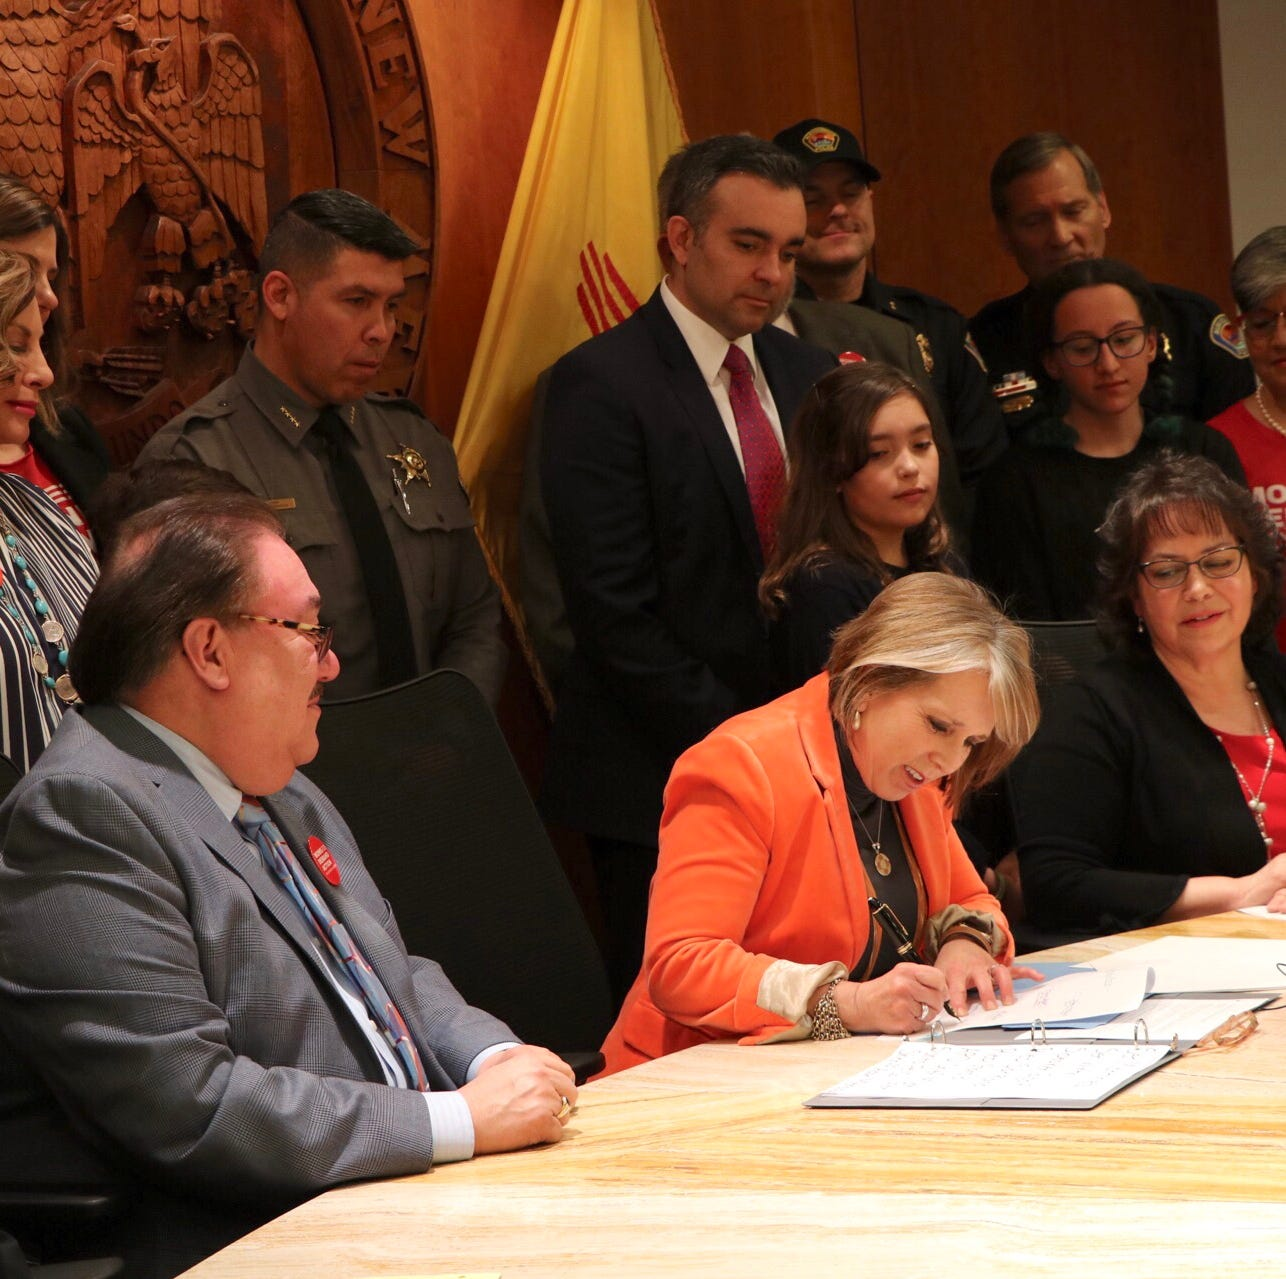 New Mexico governor enacts expanded gun background checks